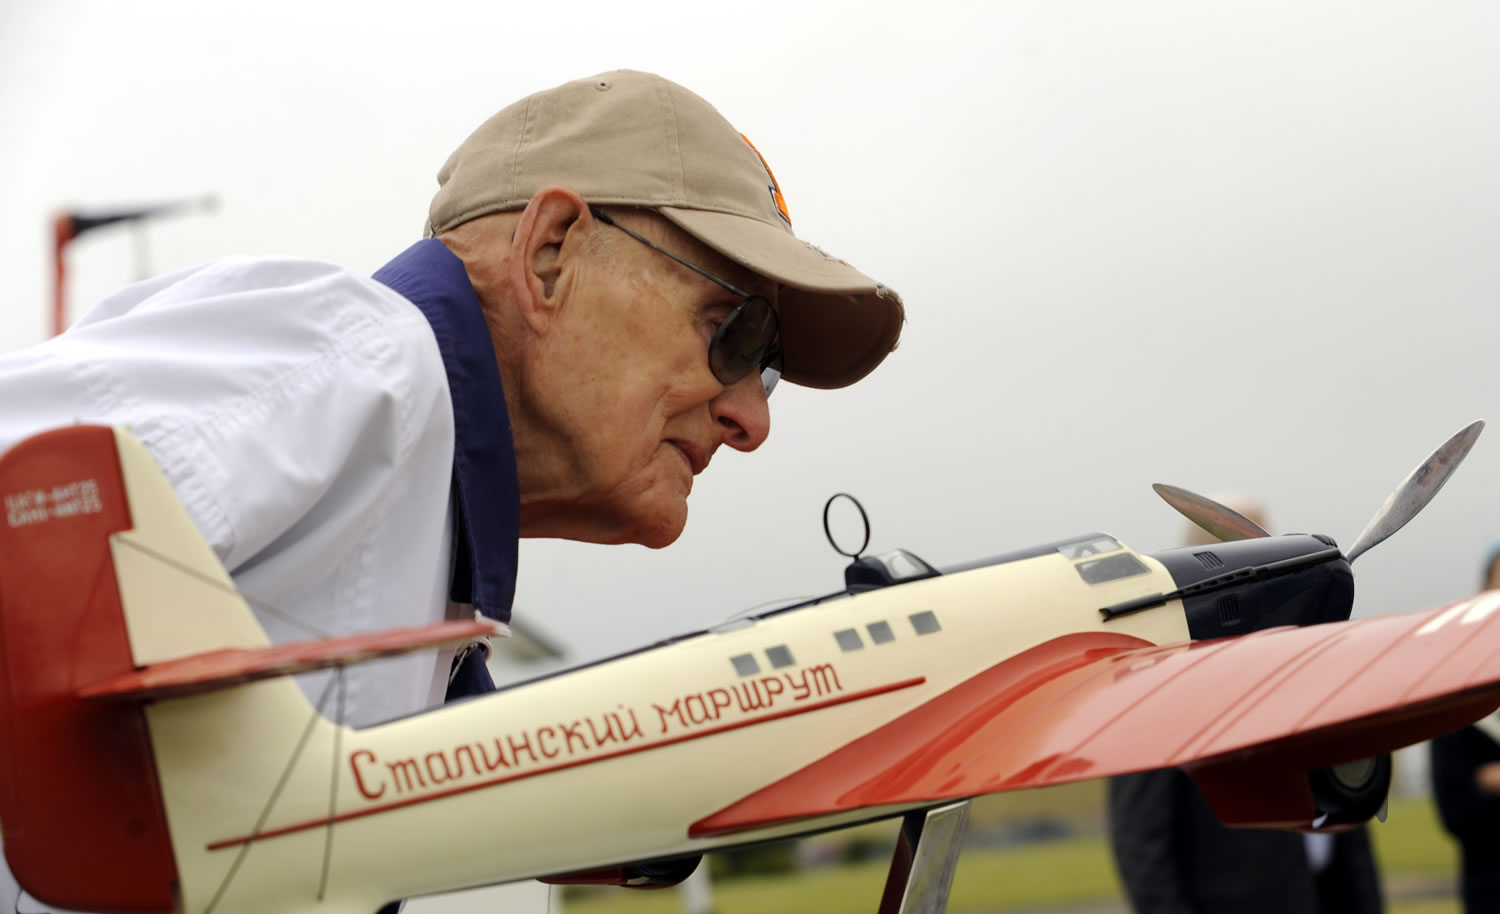 Evan Petcoff, who was at Pearson Field on the day of the Chkalov landing in 1937, examines the ANT-25 model on display just prior to Wednesday's 75th anniversary observance.